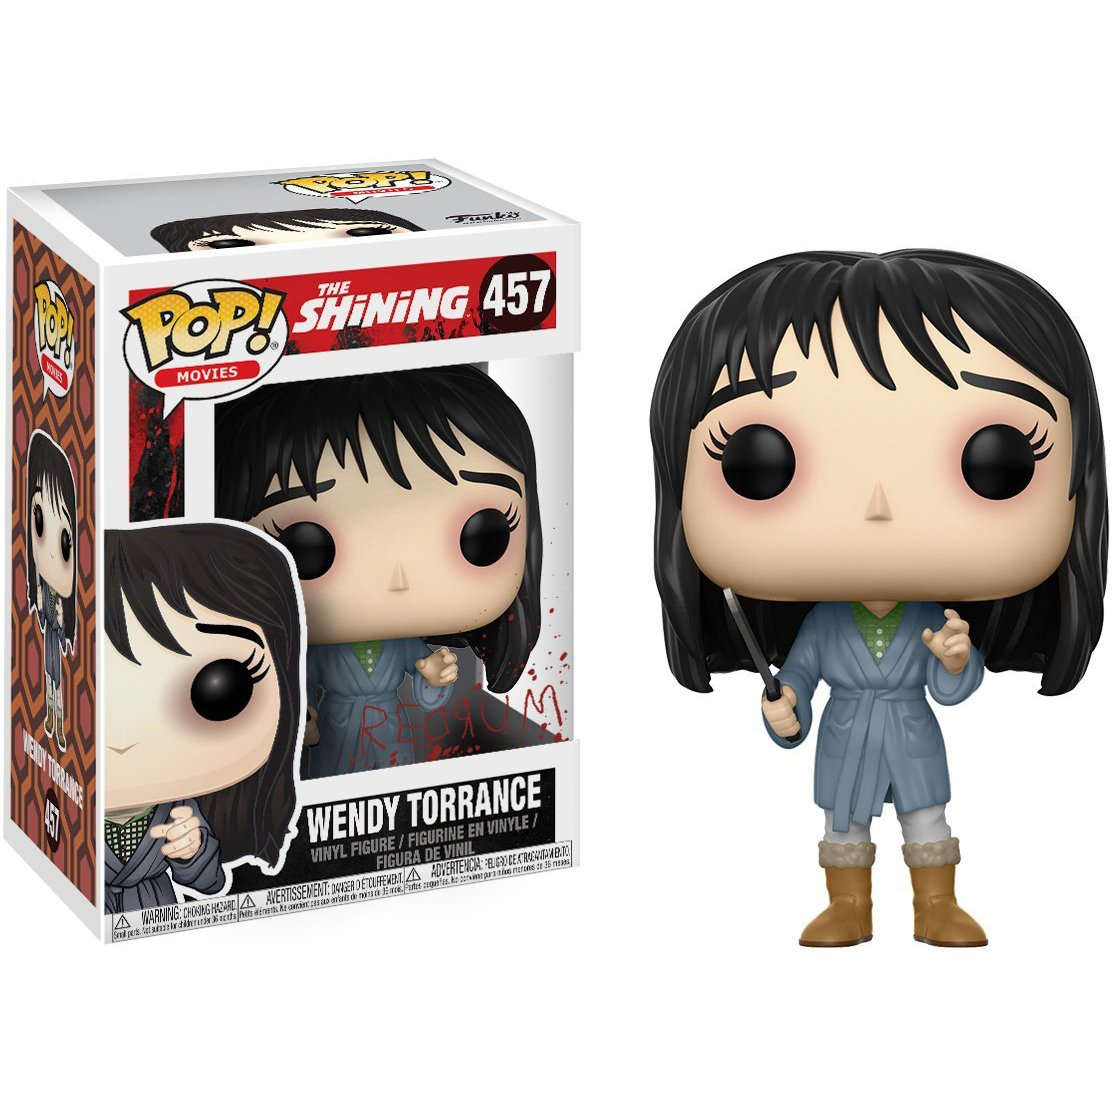 Horreur the Shining 15022 Wendy Torrance Pop Vinyl Figure,